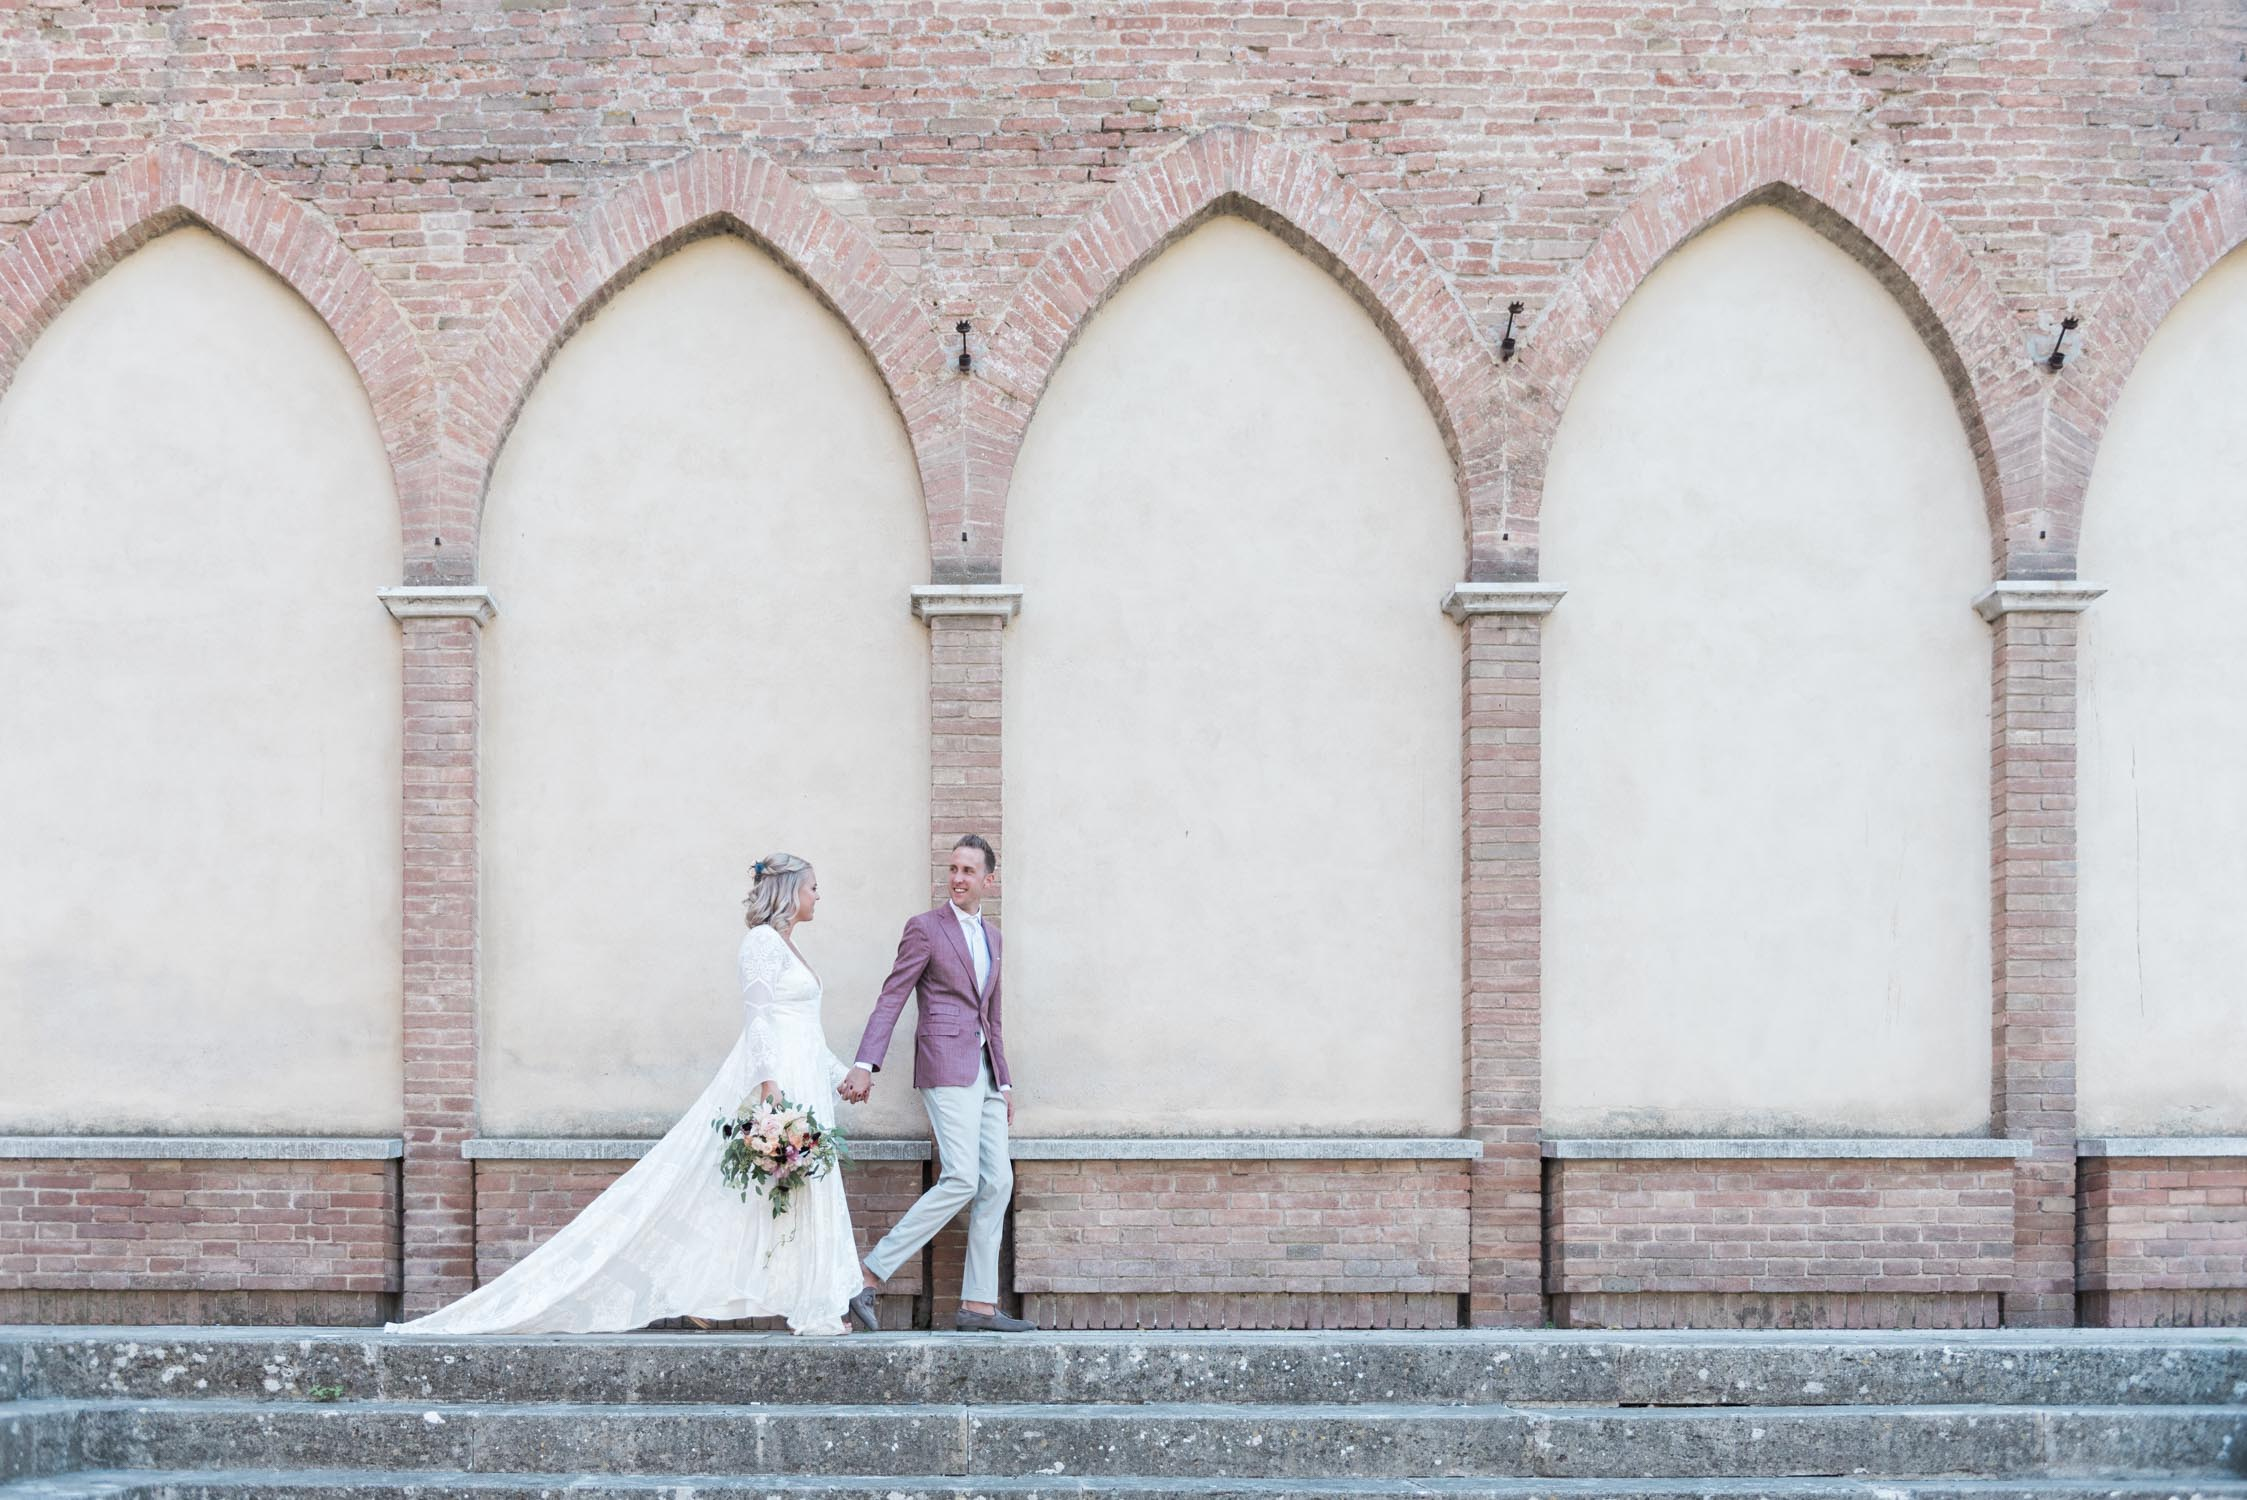 Bride and groom walking past a church in Siena, Tuscany, Italy